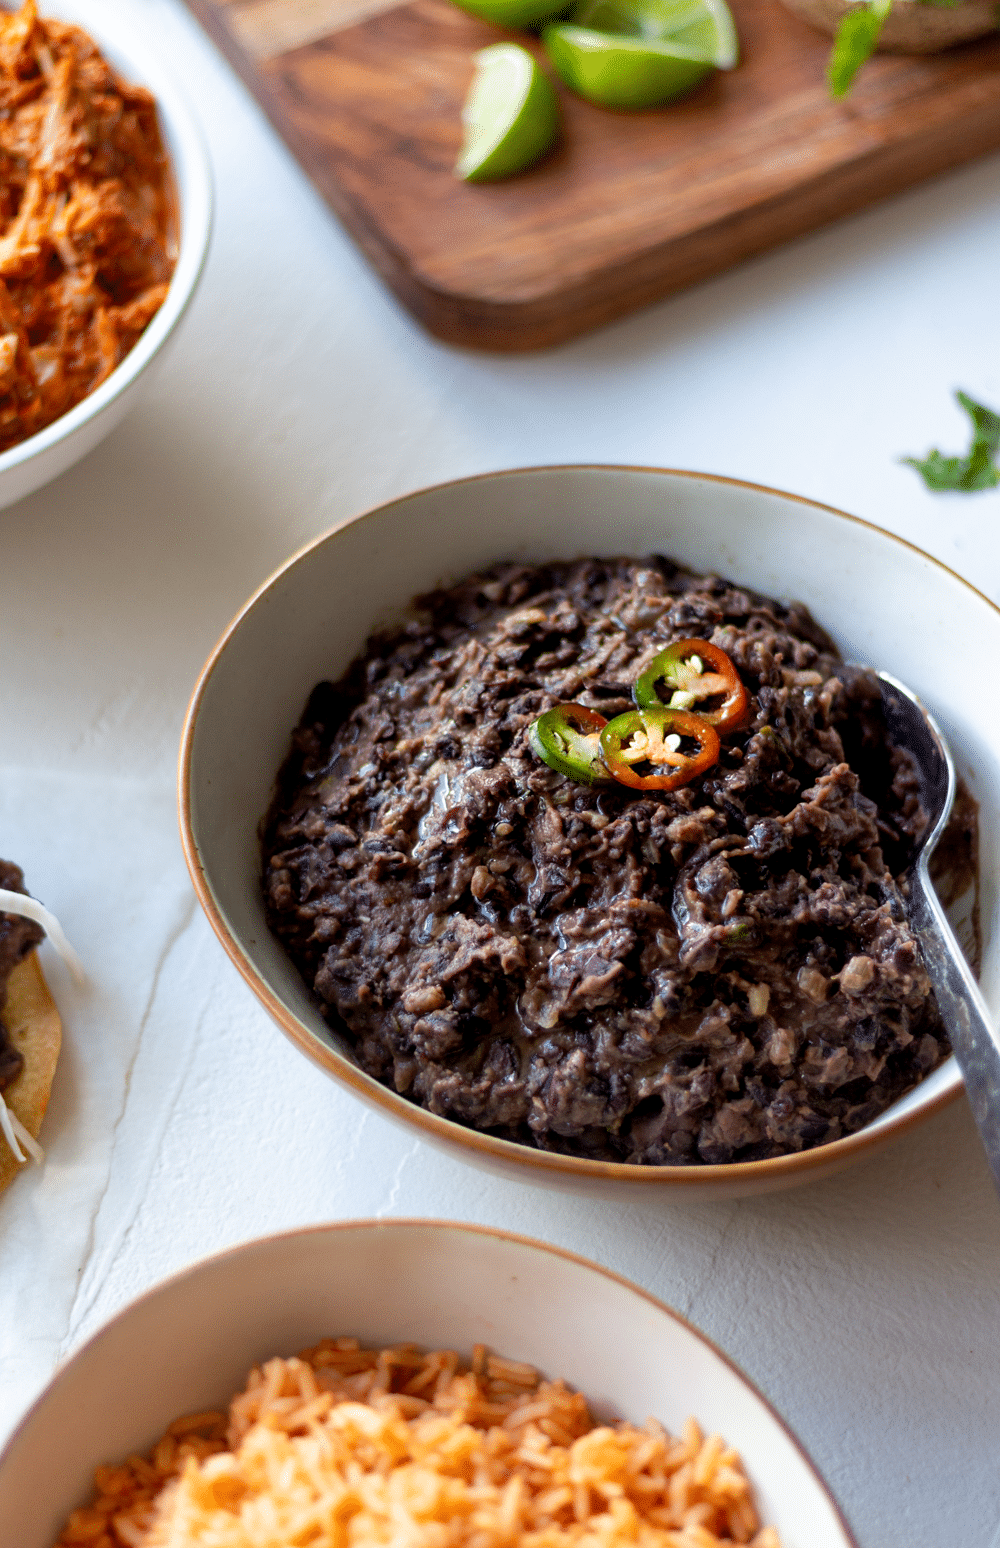 This recipe for 20-minute, easy refried black beans is hard to beat. Packed with the flavors of garlic, onion, and jalapeño, these black beans are the perfect addition to every Mexican-inspired meal. (You'd never expect they're canned beans!)